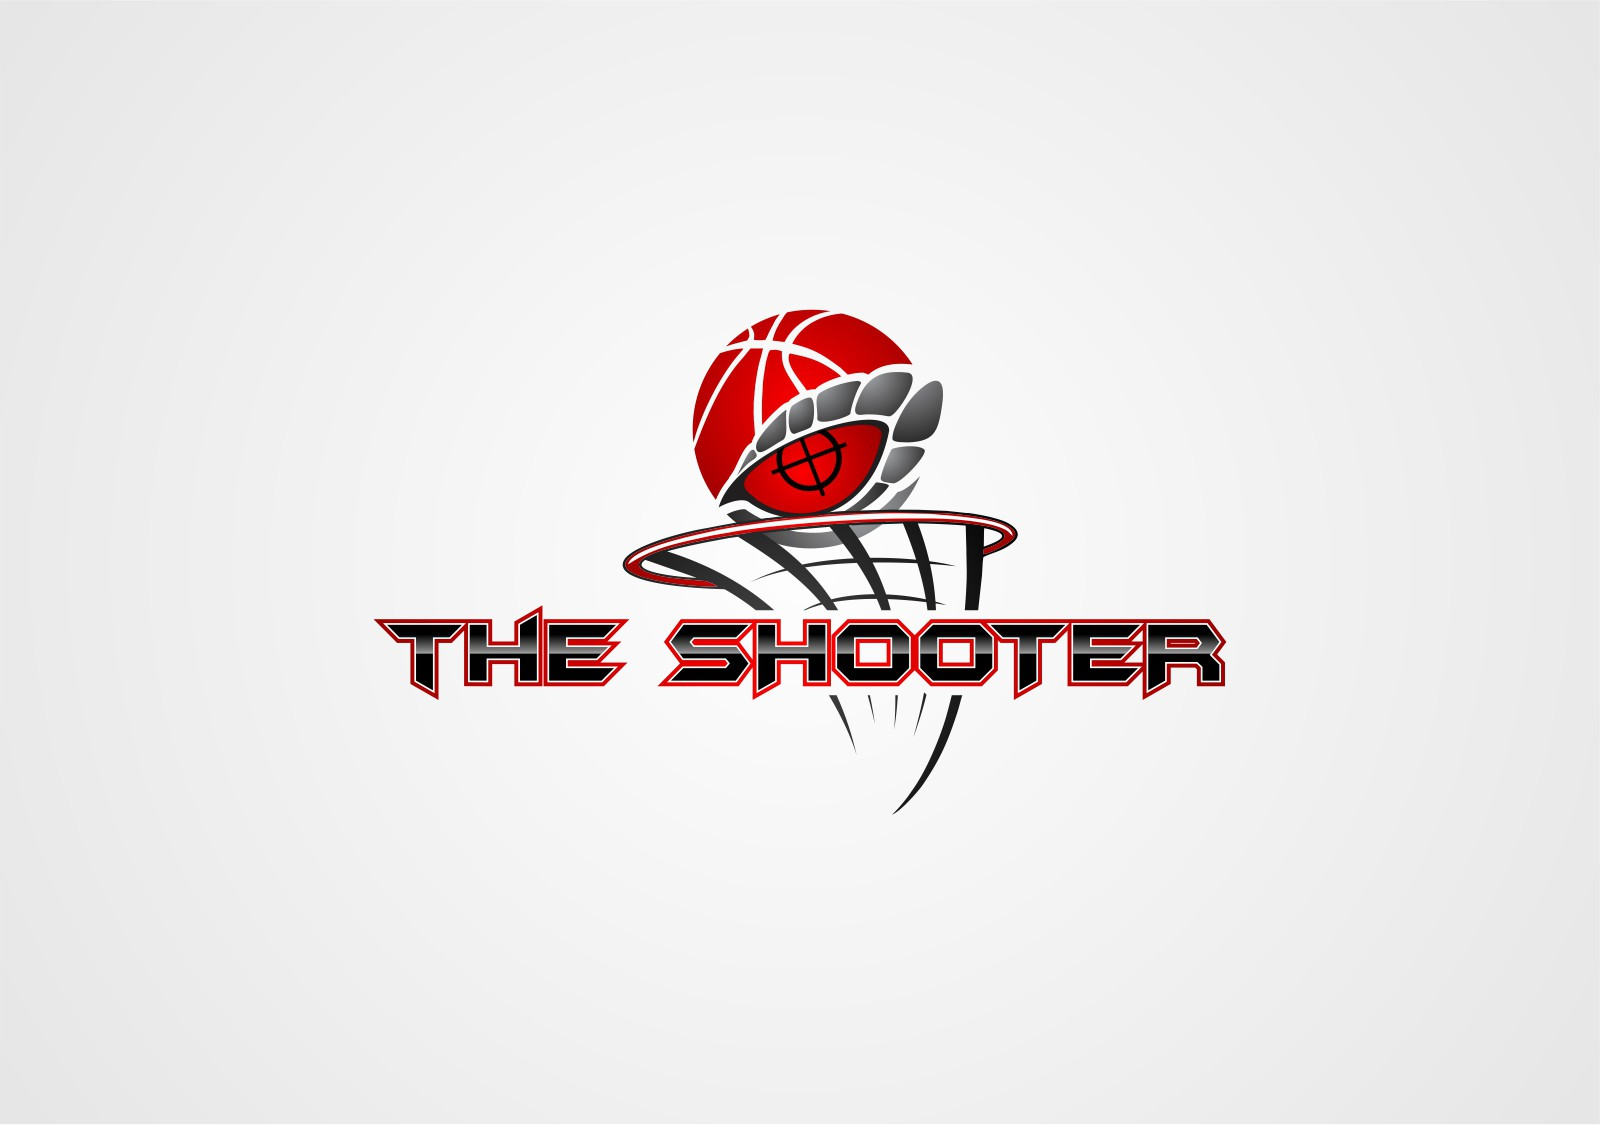 Help The Shooter with a new logo